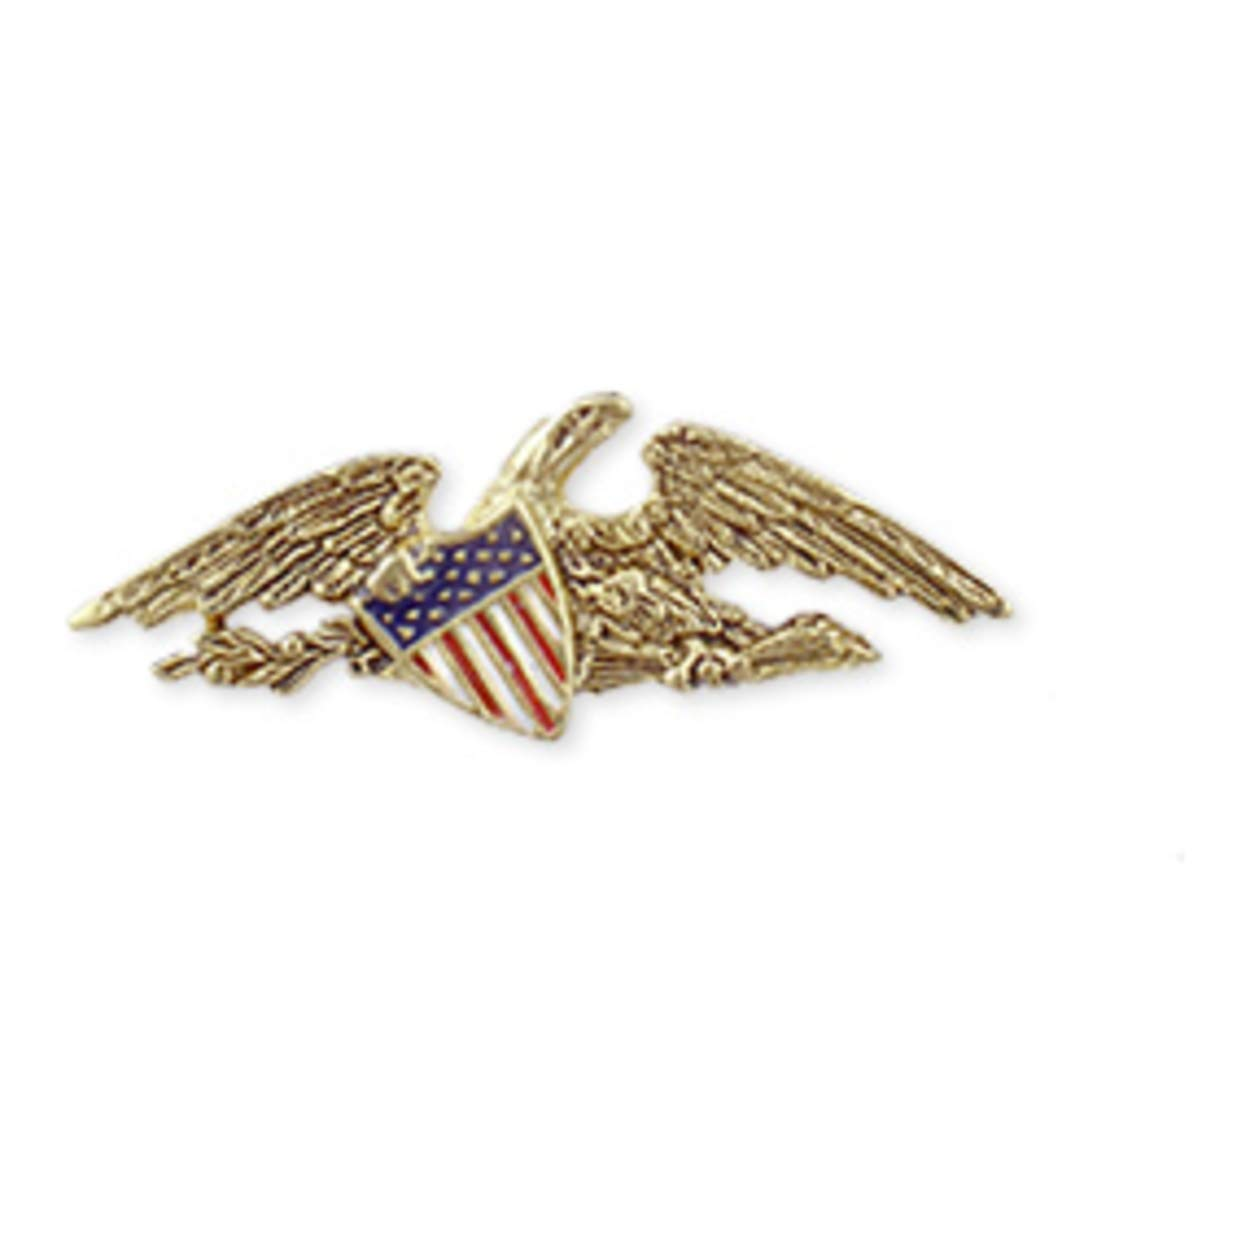 pricegems Antiqued Finish Patriotic American Eagle Flag Lapel Pin with Crest Museum Jewelry Crafted in USA by pricegems